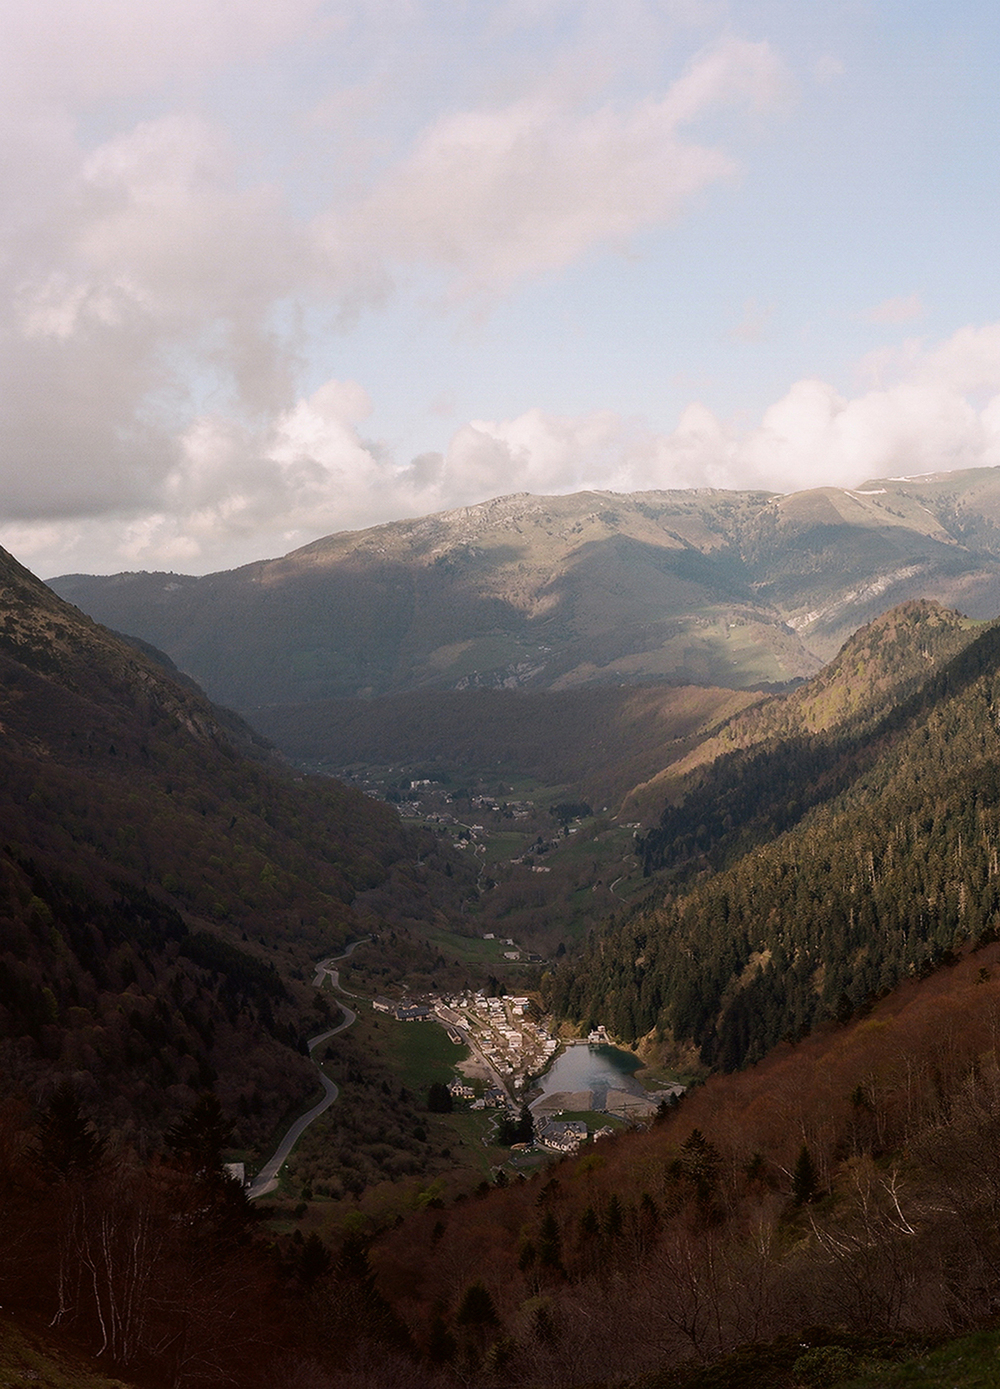 Last town in France before the Spanish border, Pyrenees, 2014